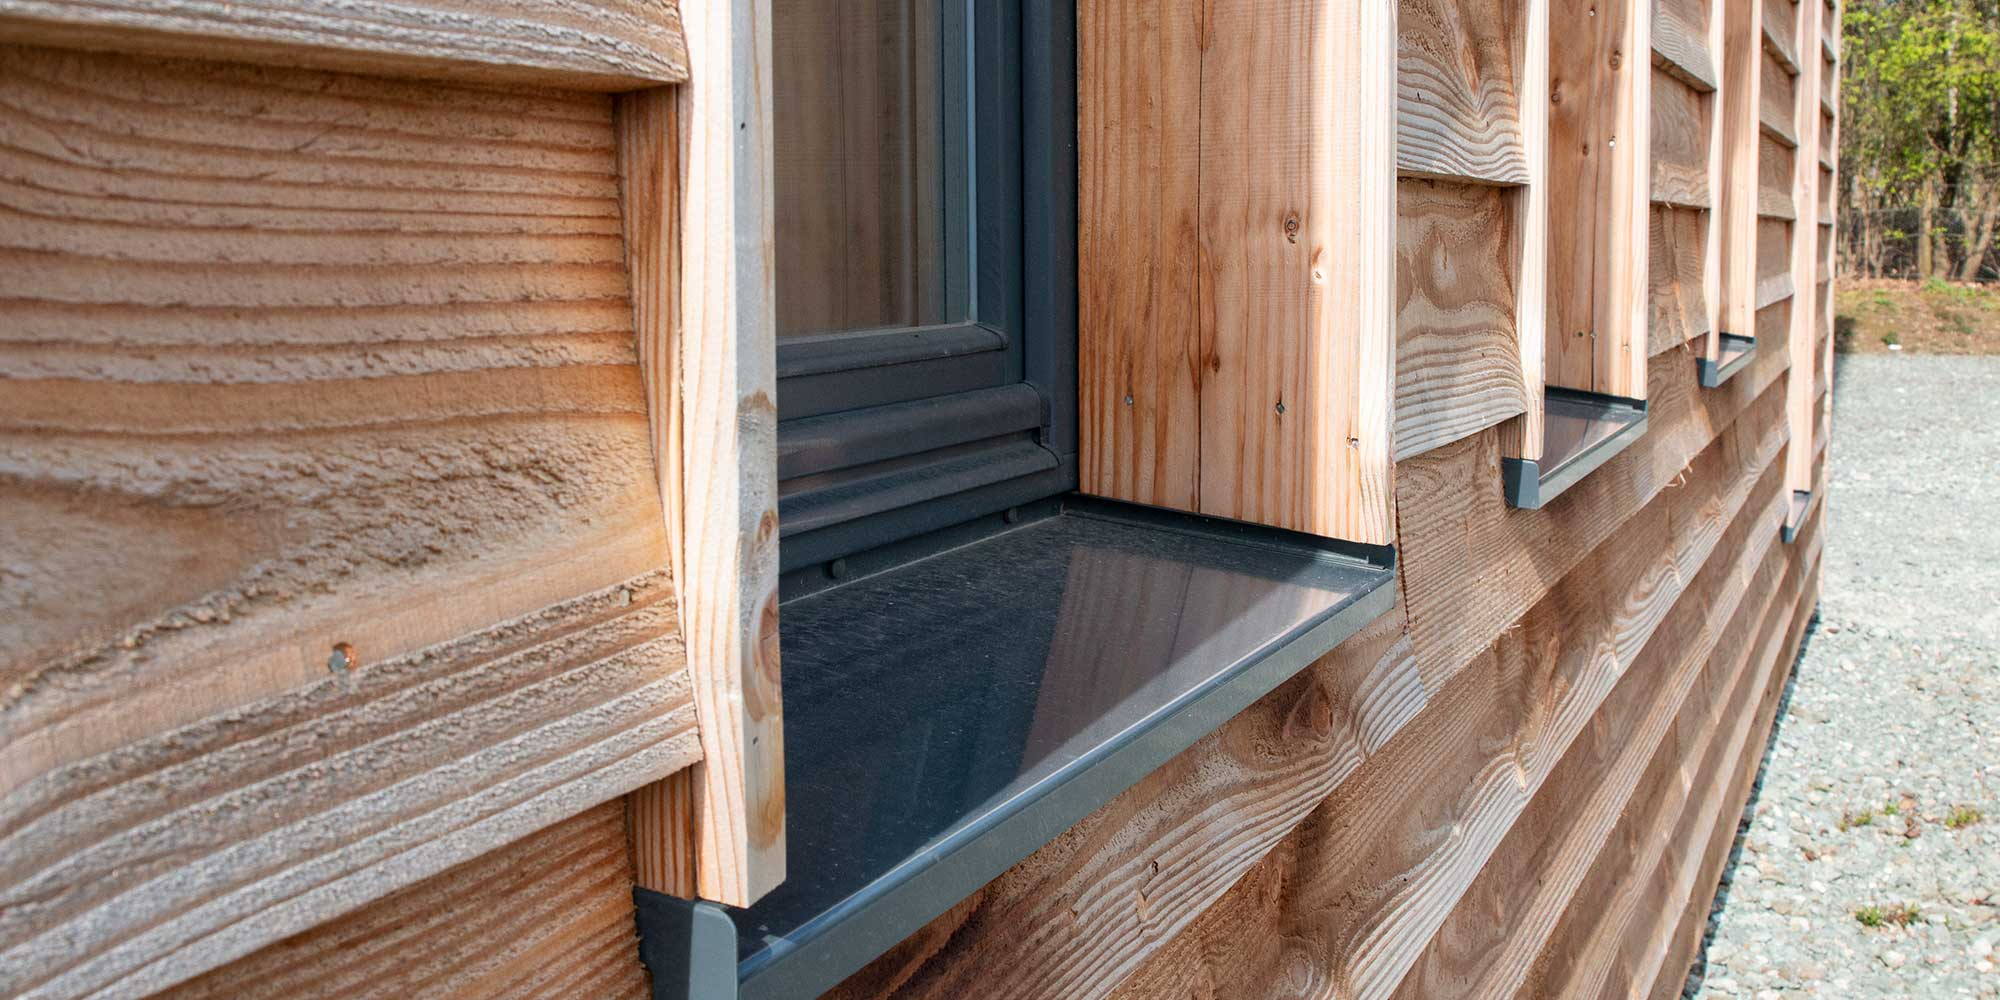 Green Building Store Windows with Timber cladding